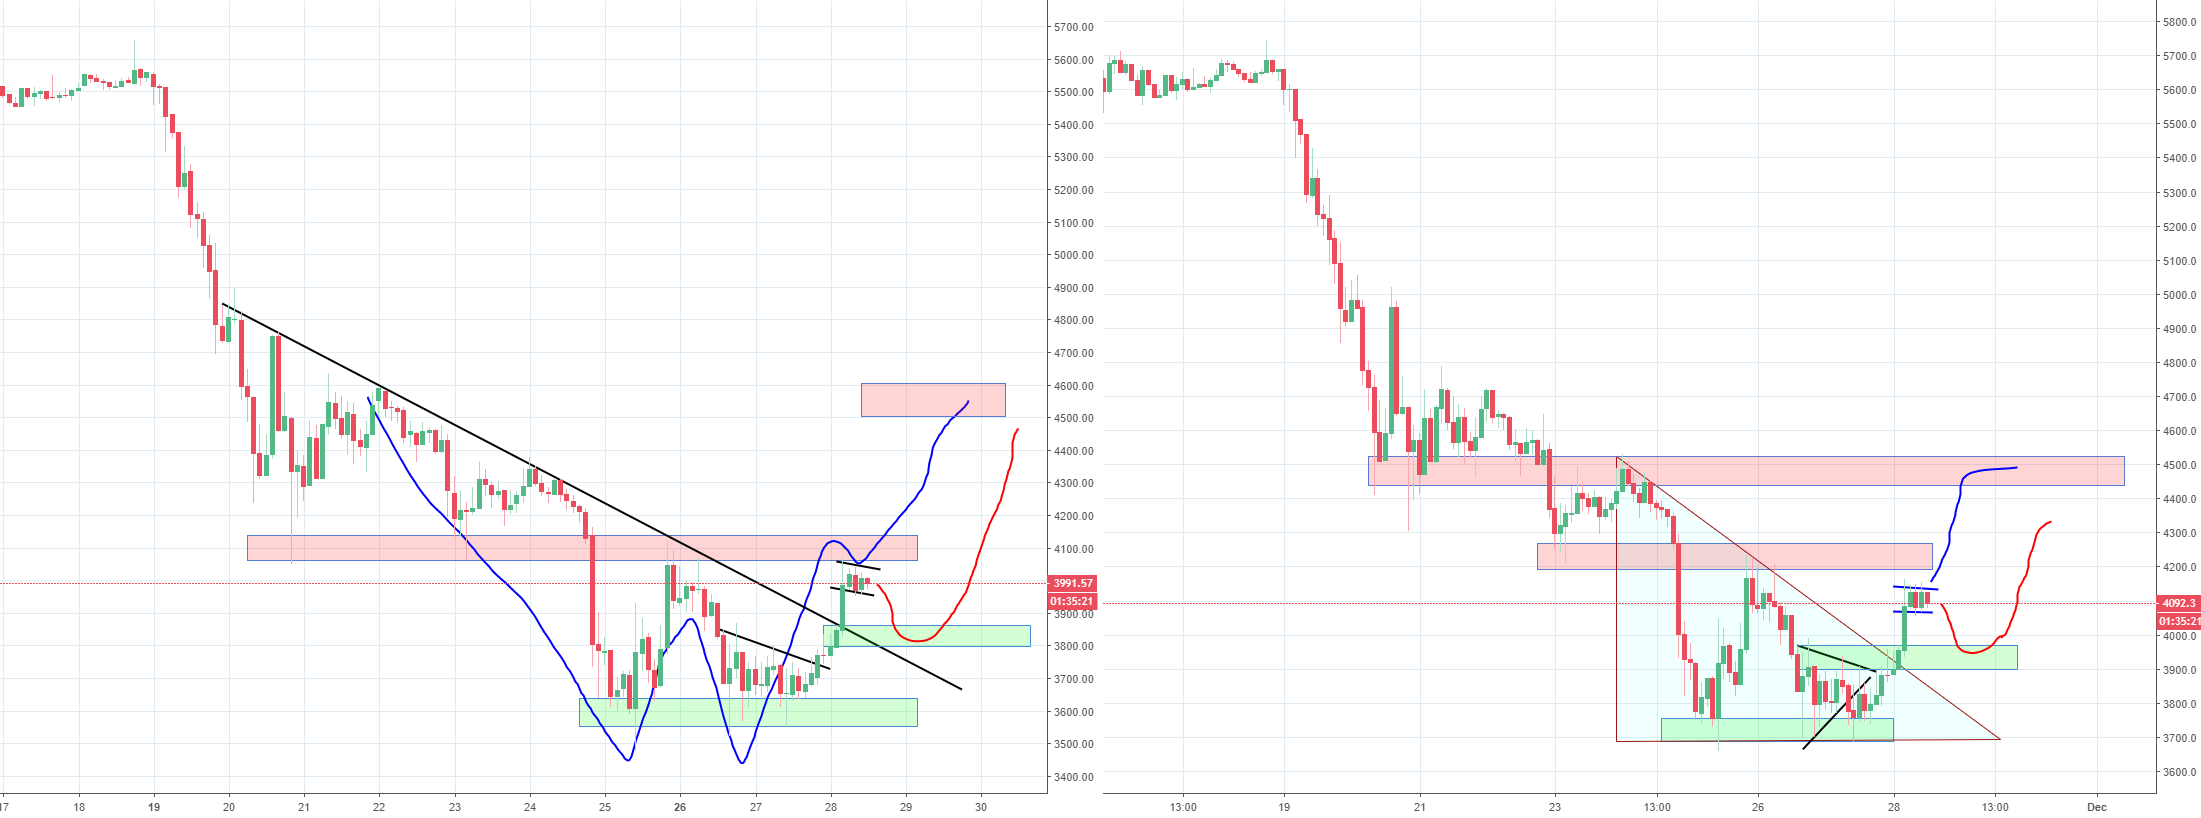 Bitcoin Double Bottom in Play, Inside of Bull Flag